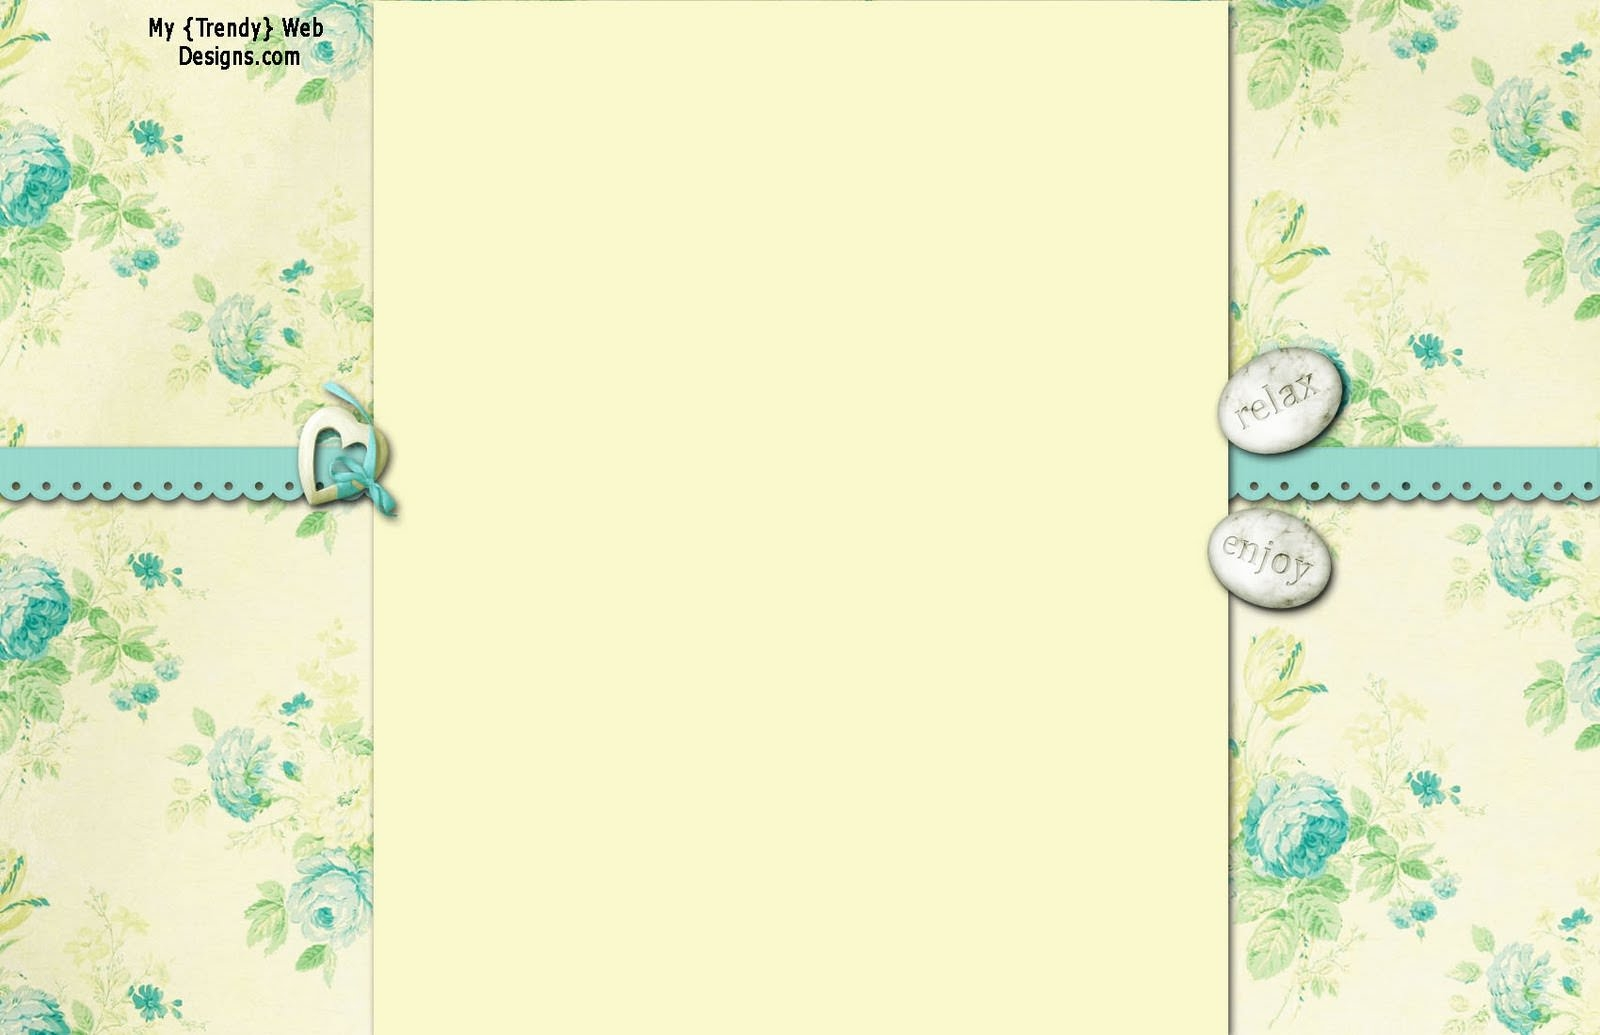 vintage-journal-style-backgrounds.jpg